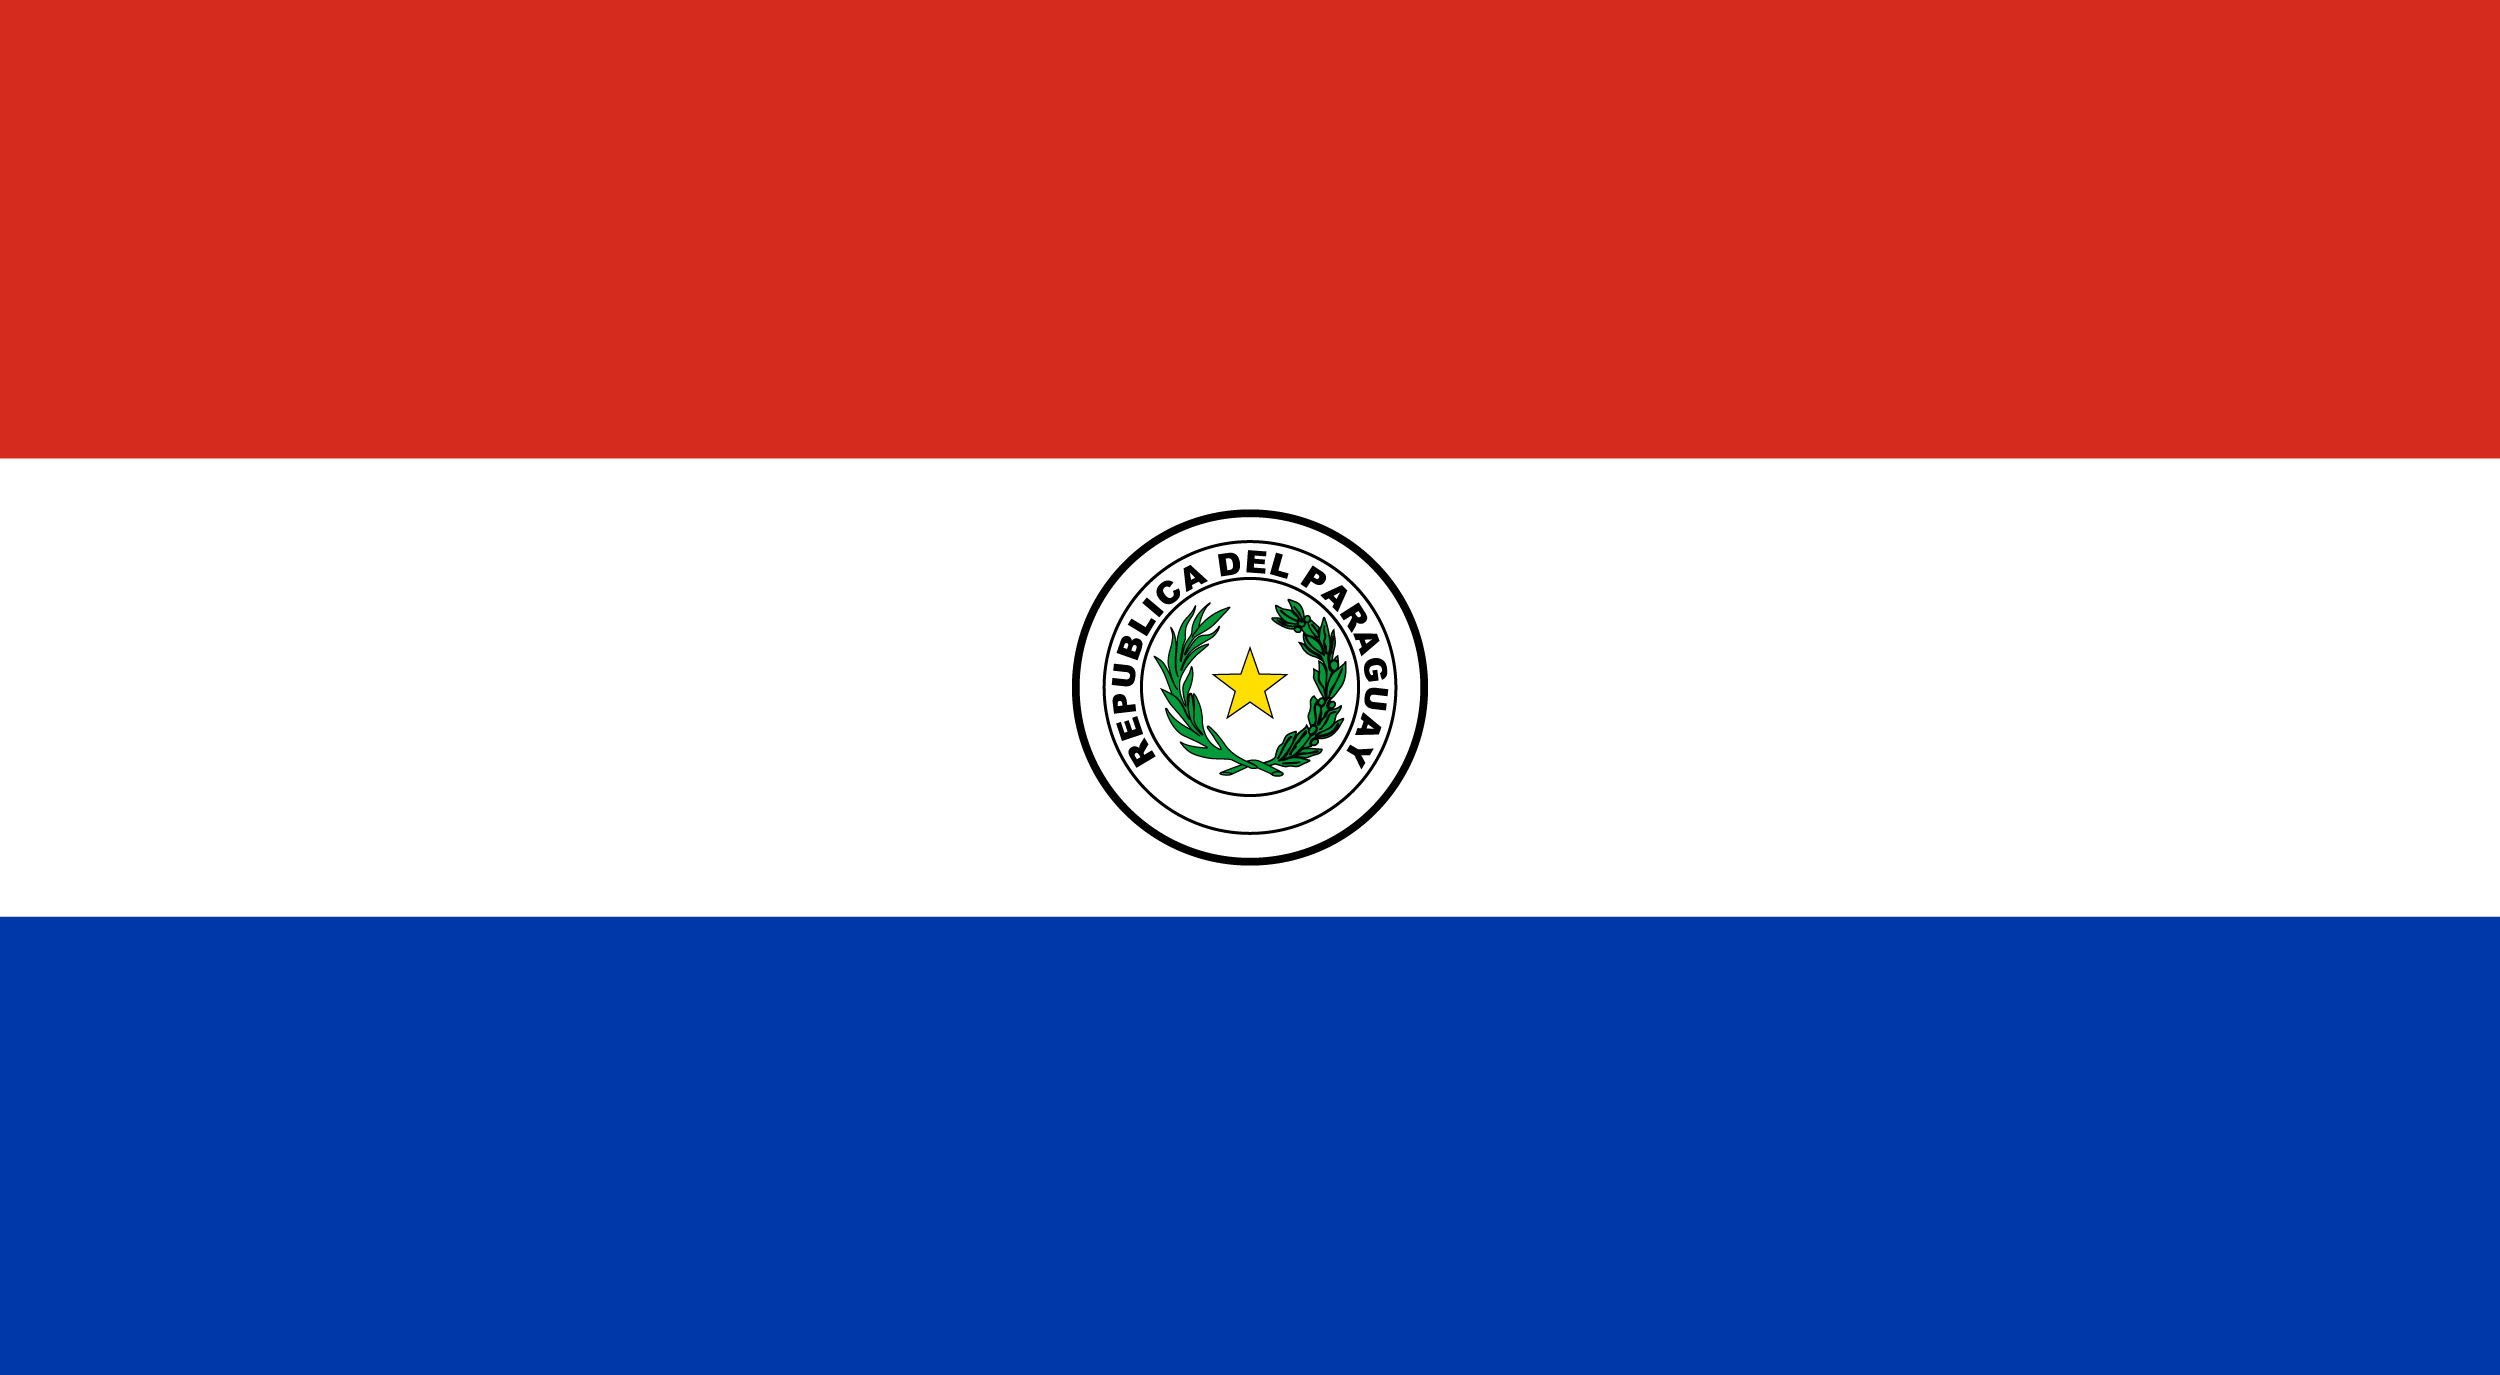 Paraguay flag stickers